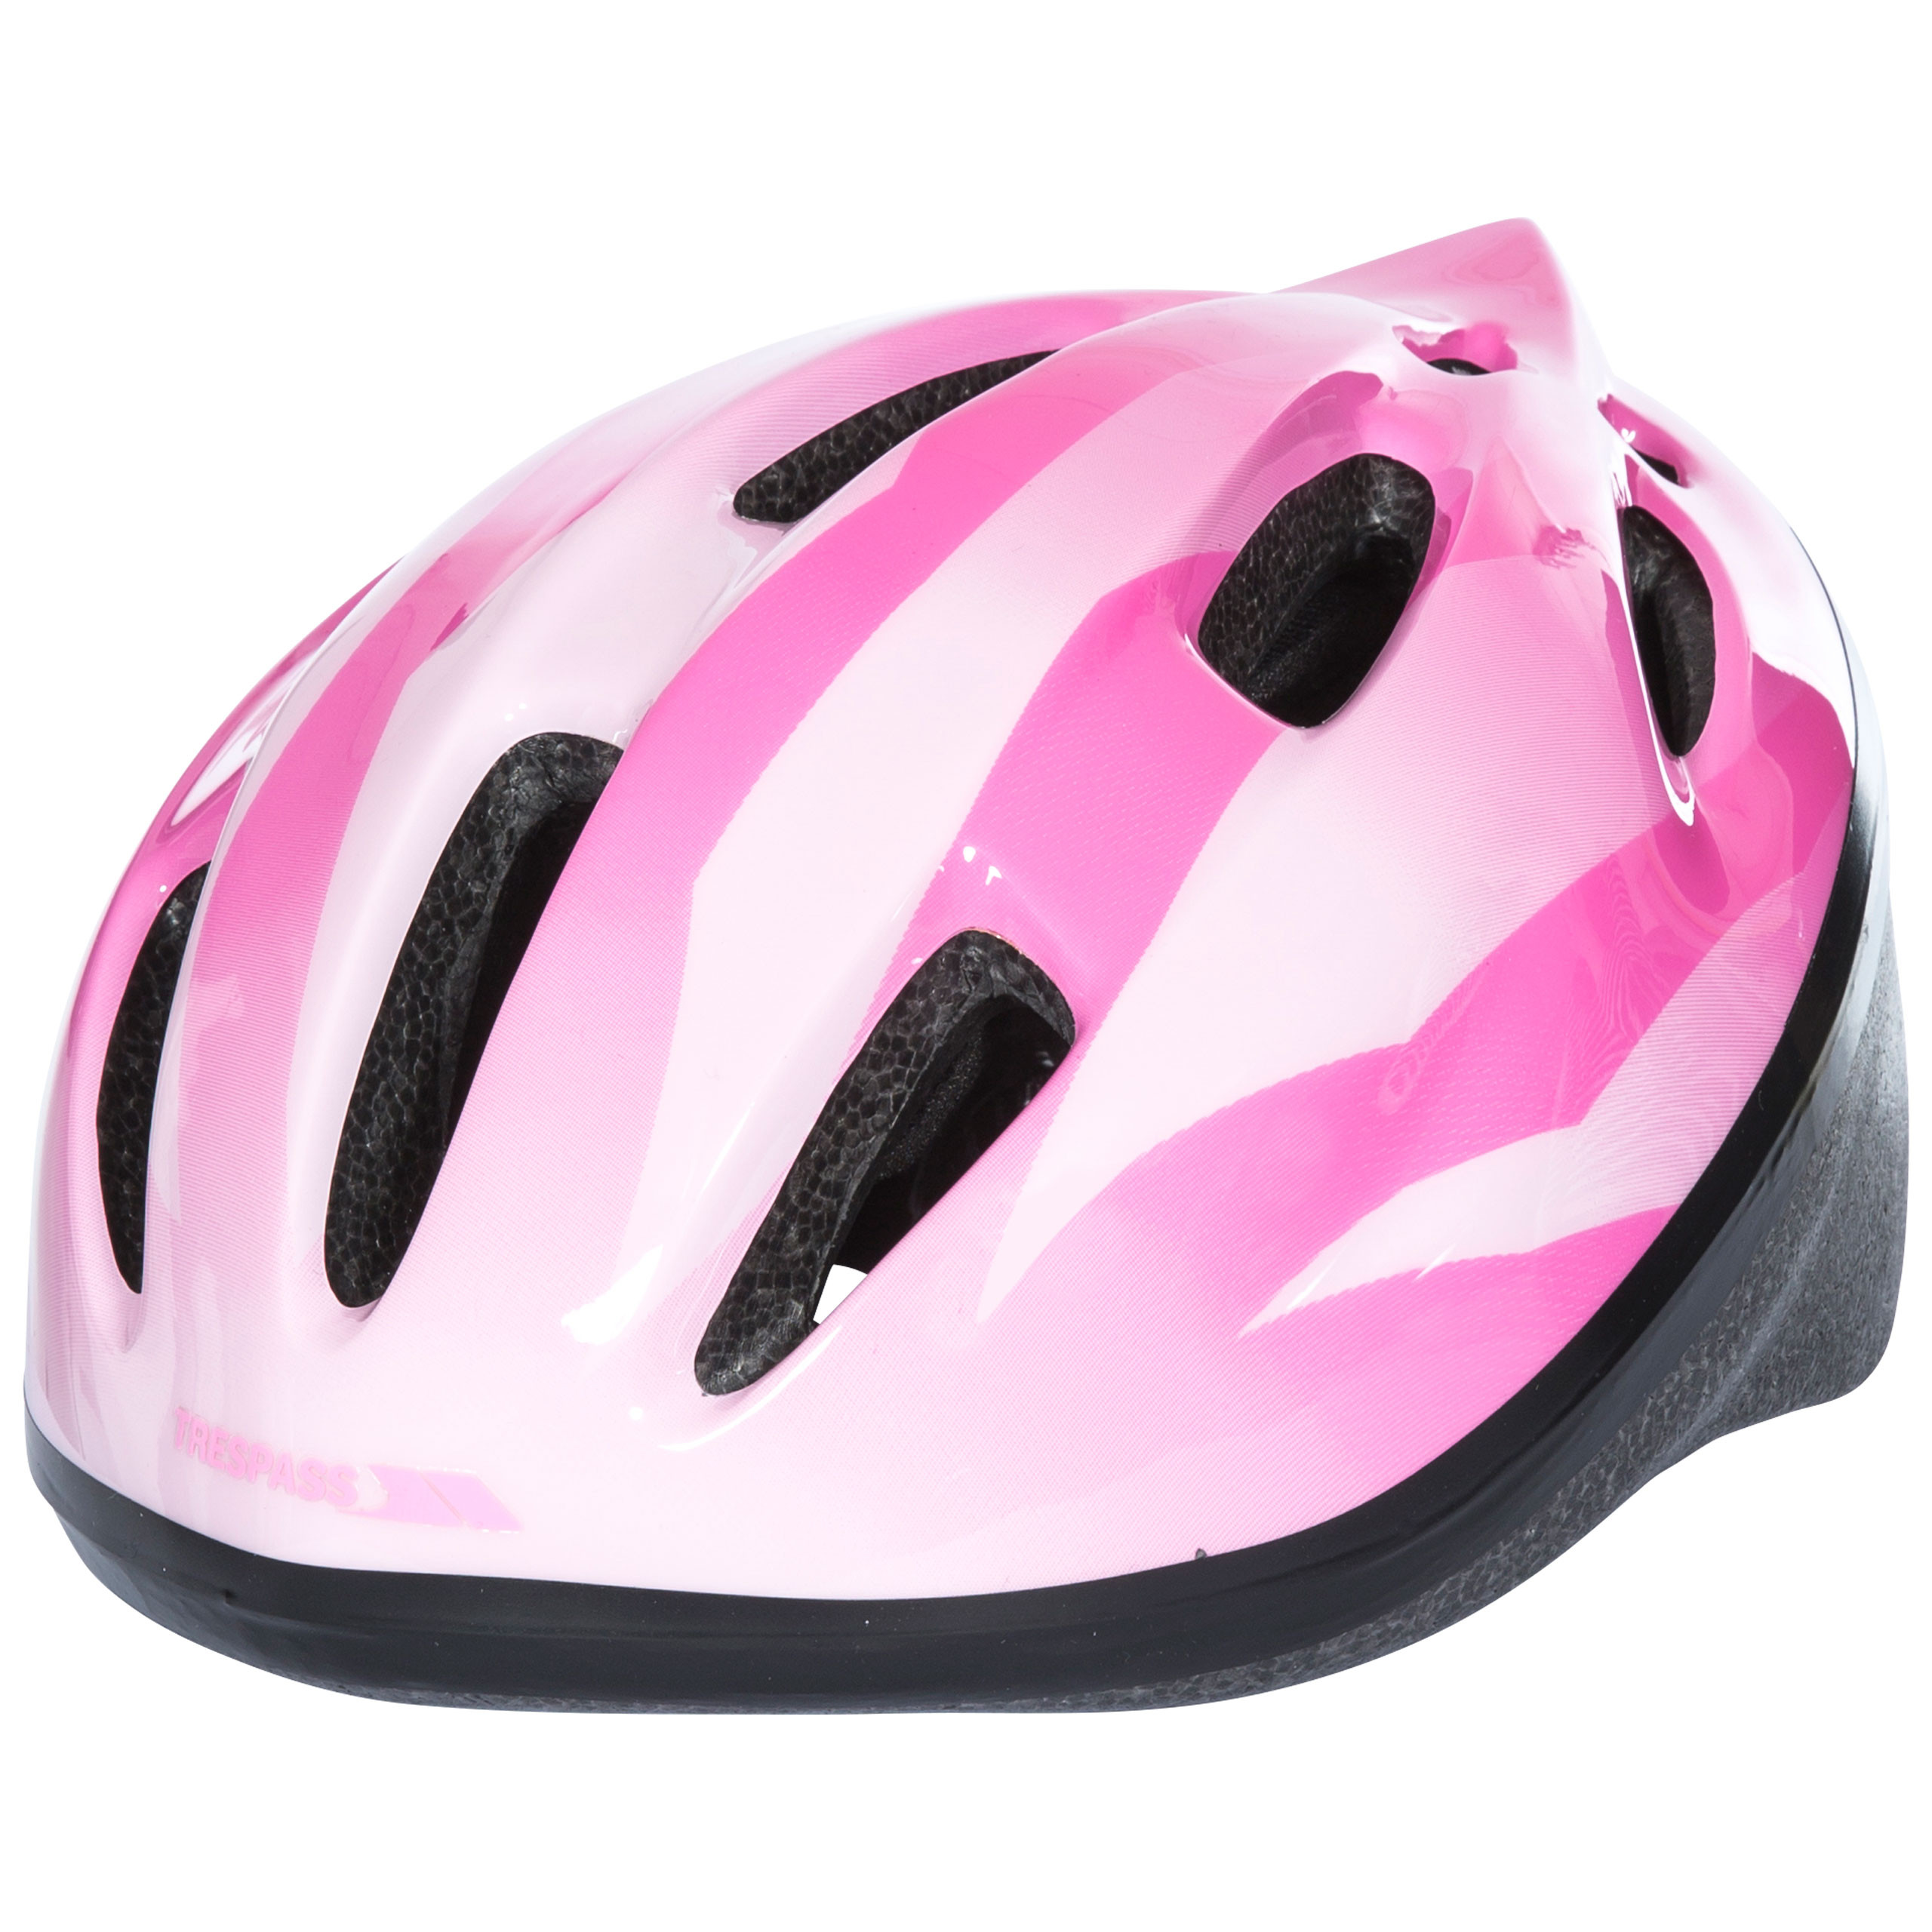 Cranky Kids Cycle Helmet In Pink